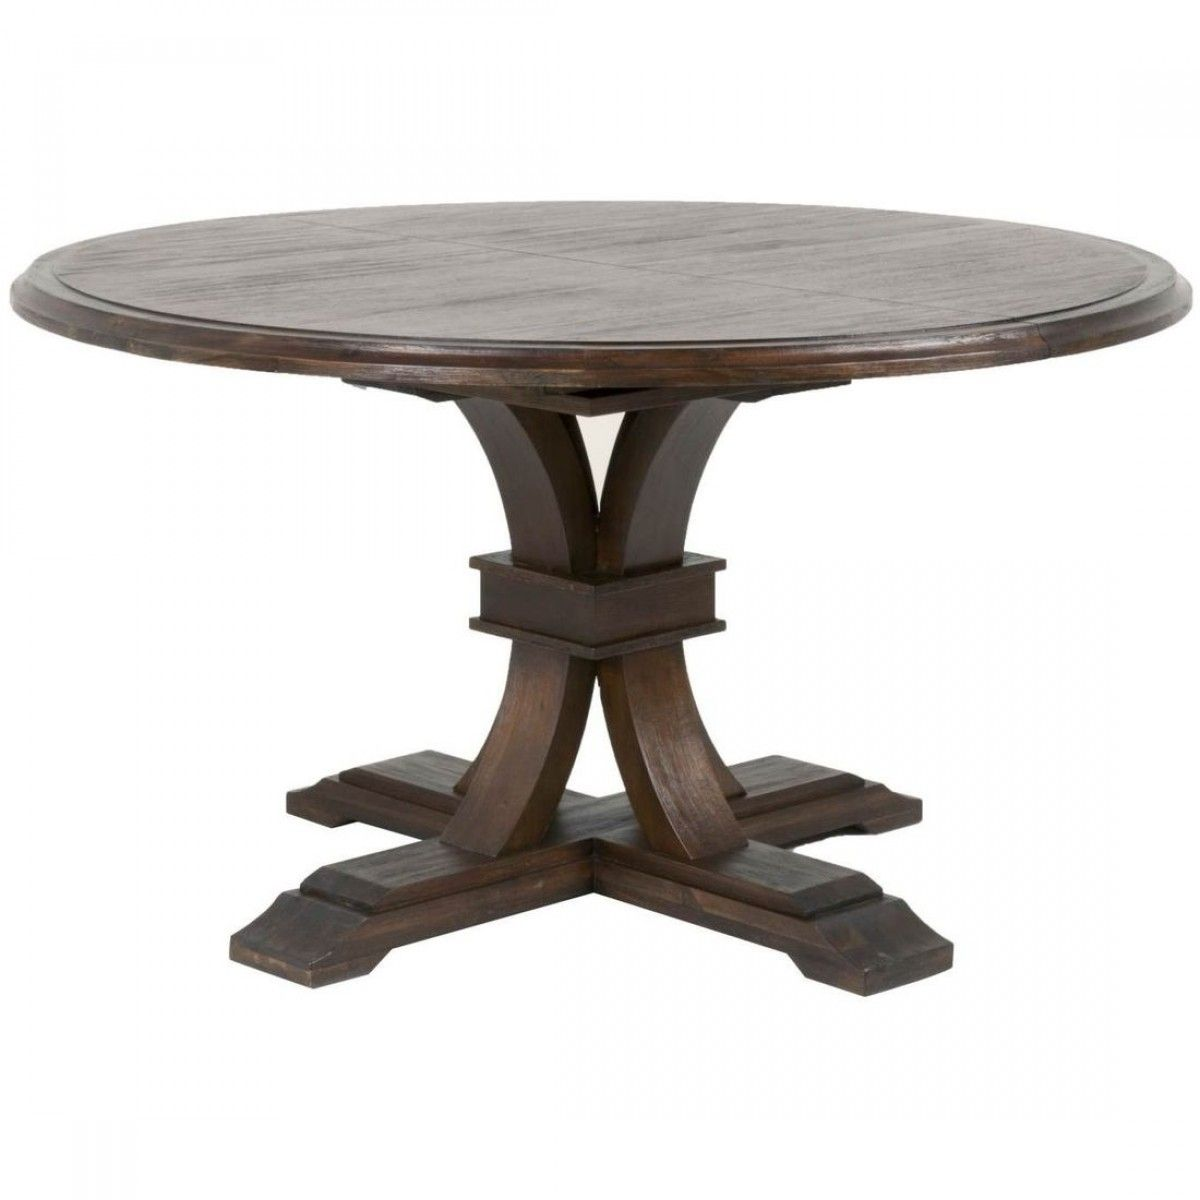 Round Dining Table Extenders Httparghartscom Pinterest - Table extenders for round tables